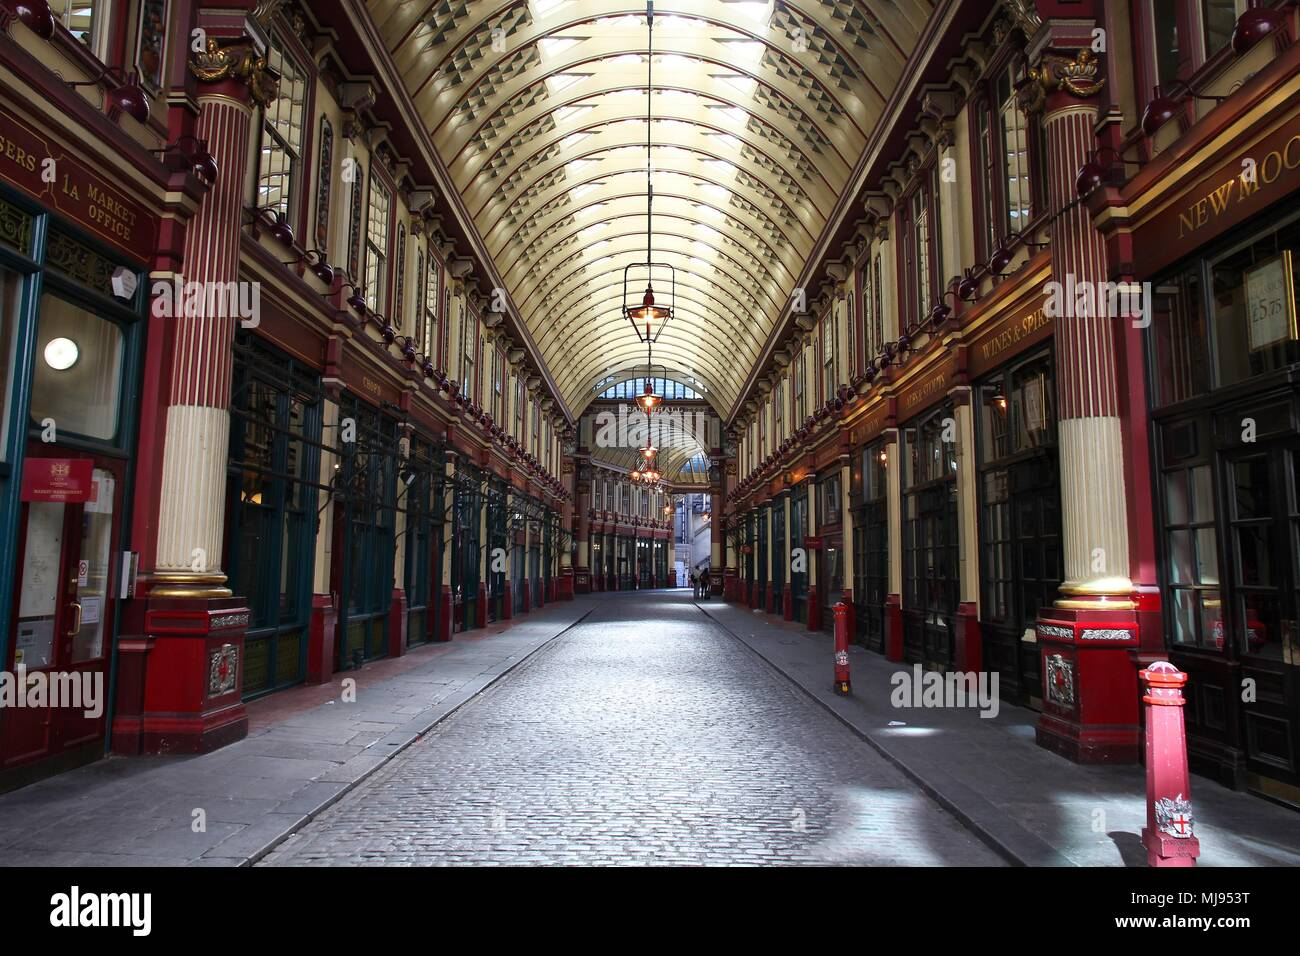 LONDON - MAY 13: Leadenhall market on May 13, 2012 in London. It is one of the oldest markets in London, dating back to the 14th century. - Stock Image